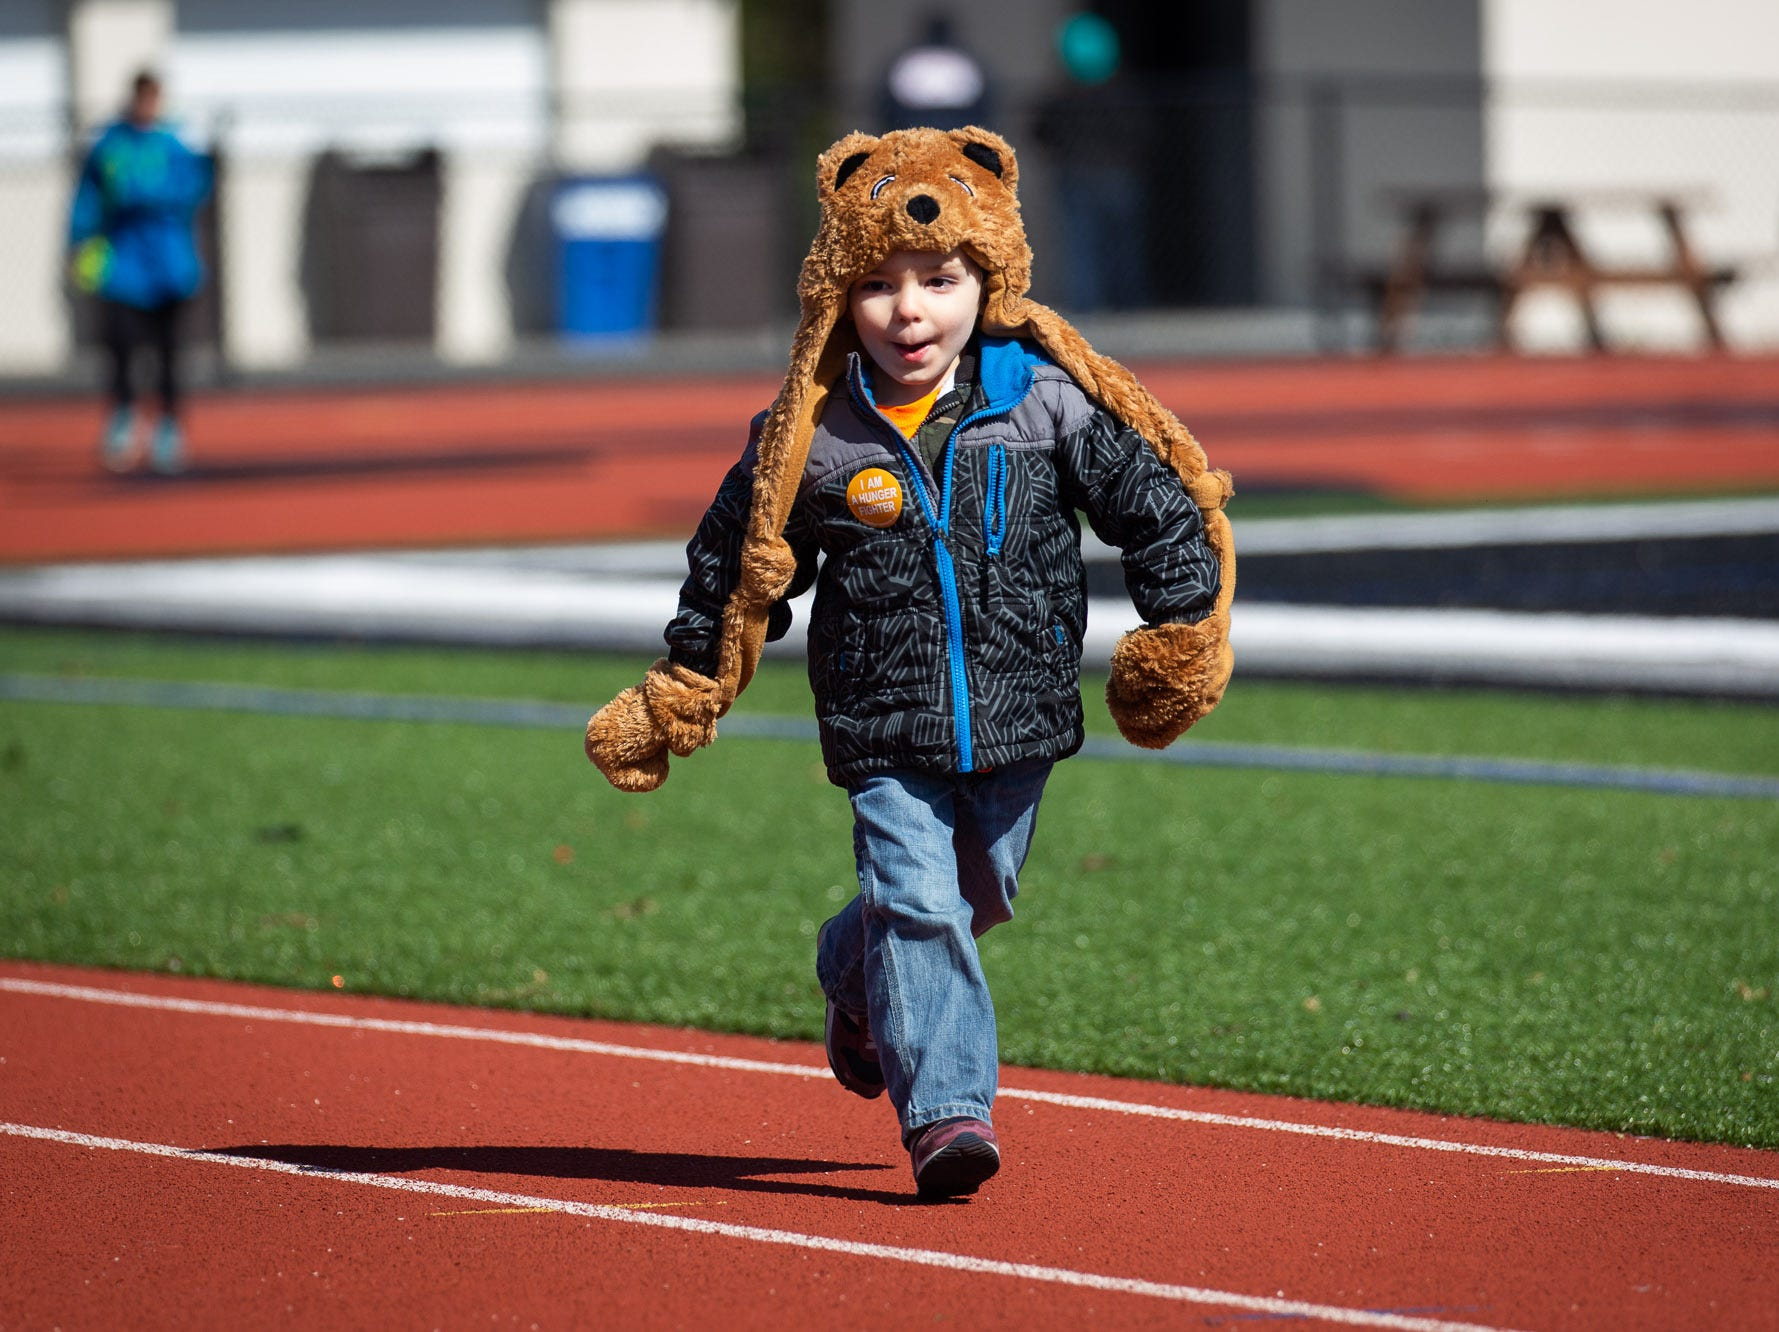 Luke Fitchett, 4, of Hanover, races down the South Western High School track while taking part in the 42nd annual Hanover Area CROP Walk, Sunday, Oct. 21 in Hanover. Fitchett was attending with his parents, Tommy and Lauren Fitchett, and siblings Nathan and Gwen.